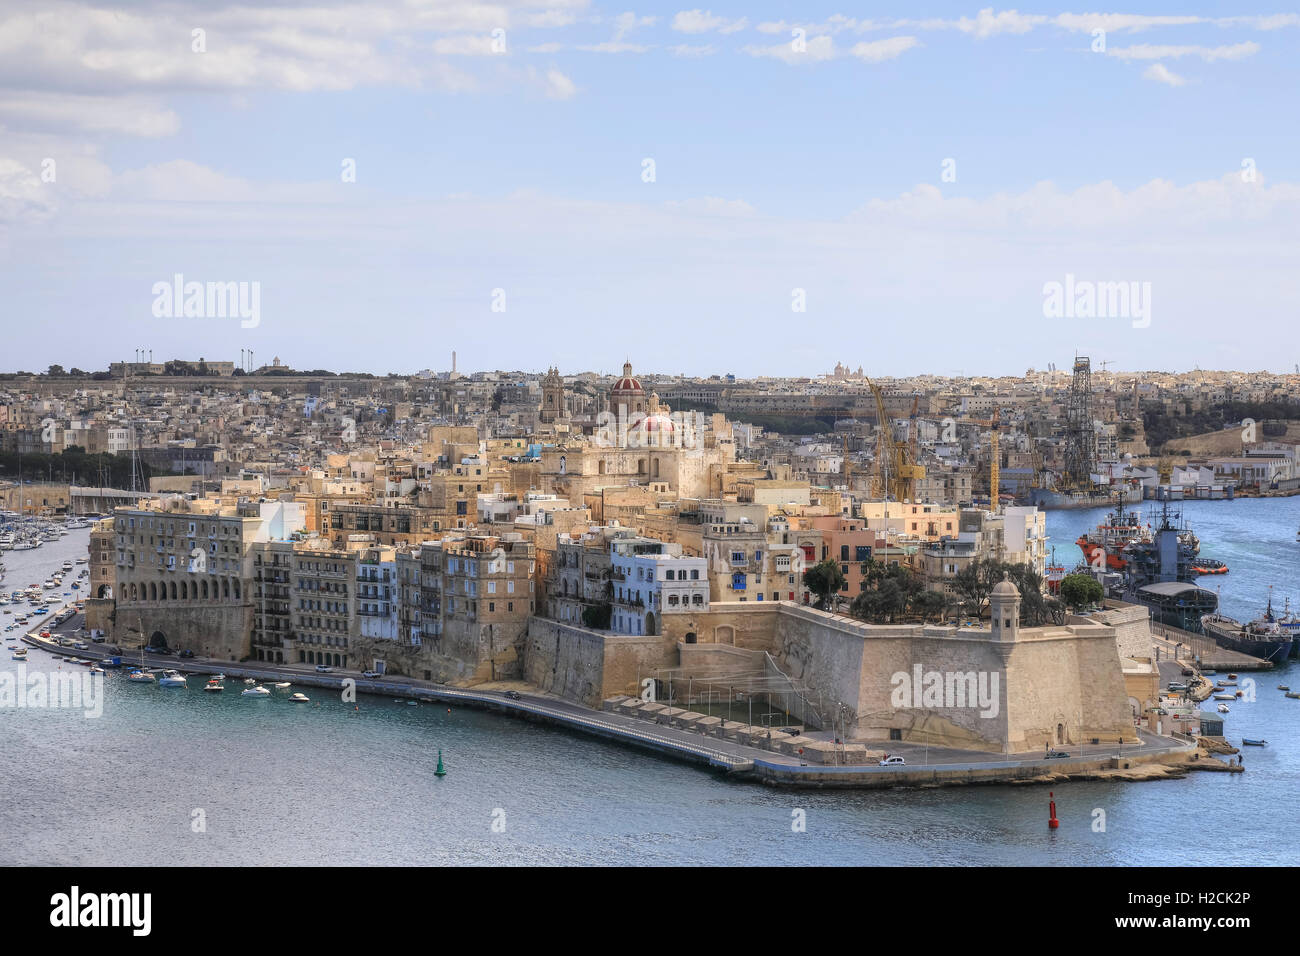 Gardjola Gardens, Senglea, Valletta, Three Cities, Malta - Stock Image